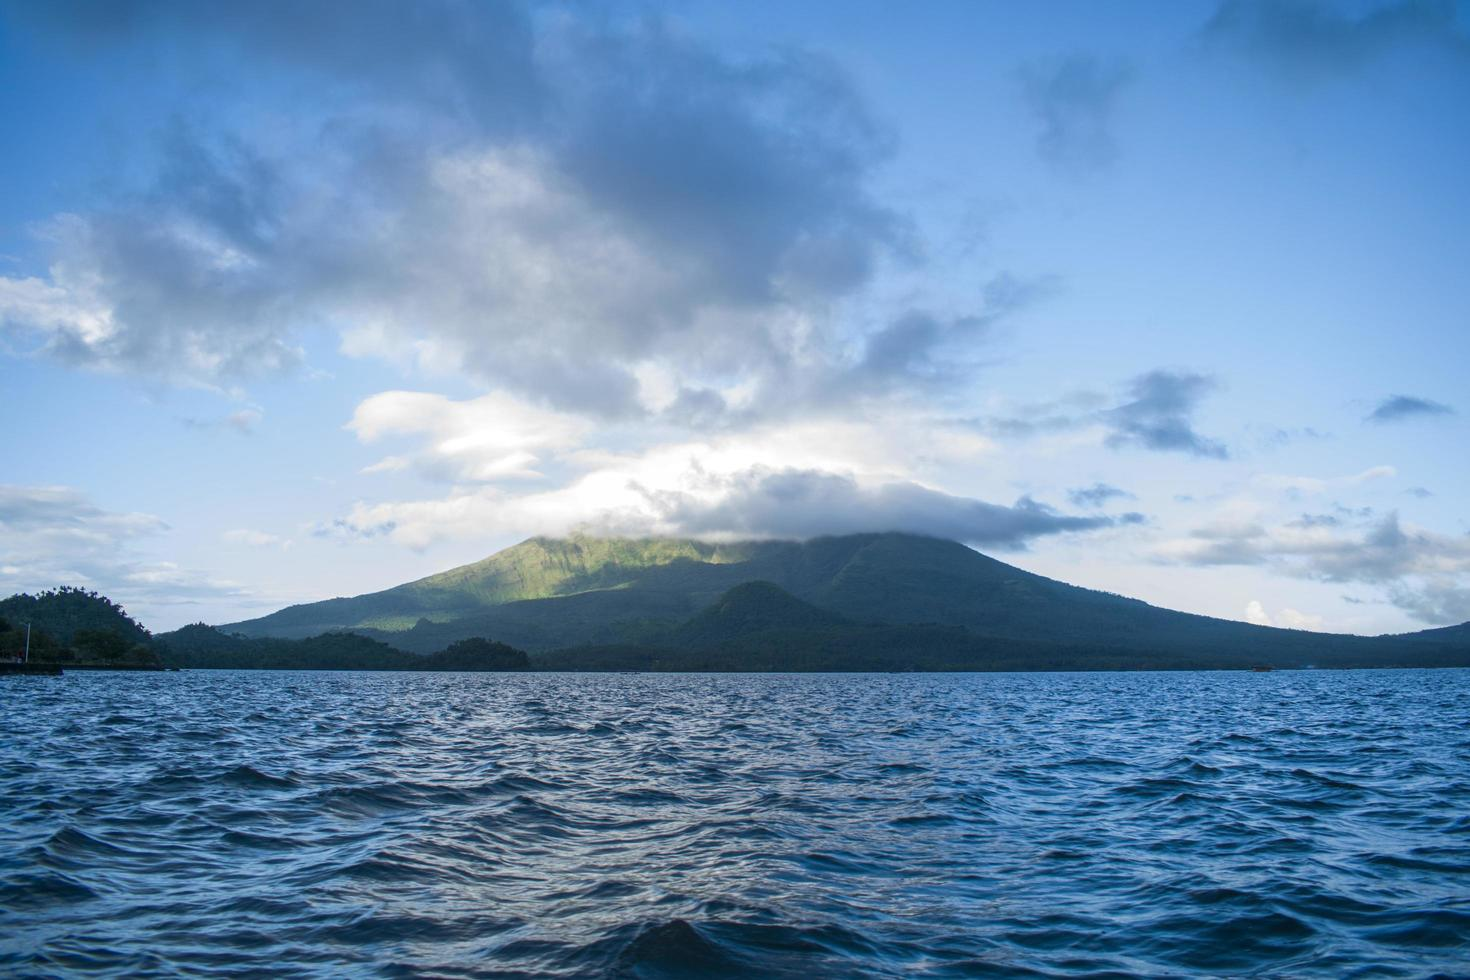 Ocean near mountain with clouds photo